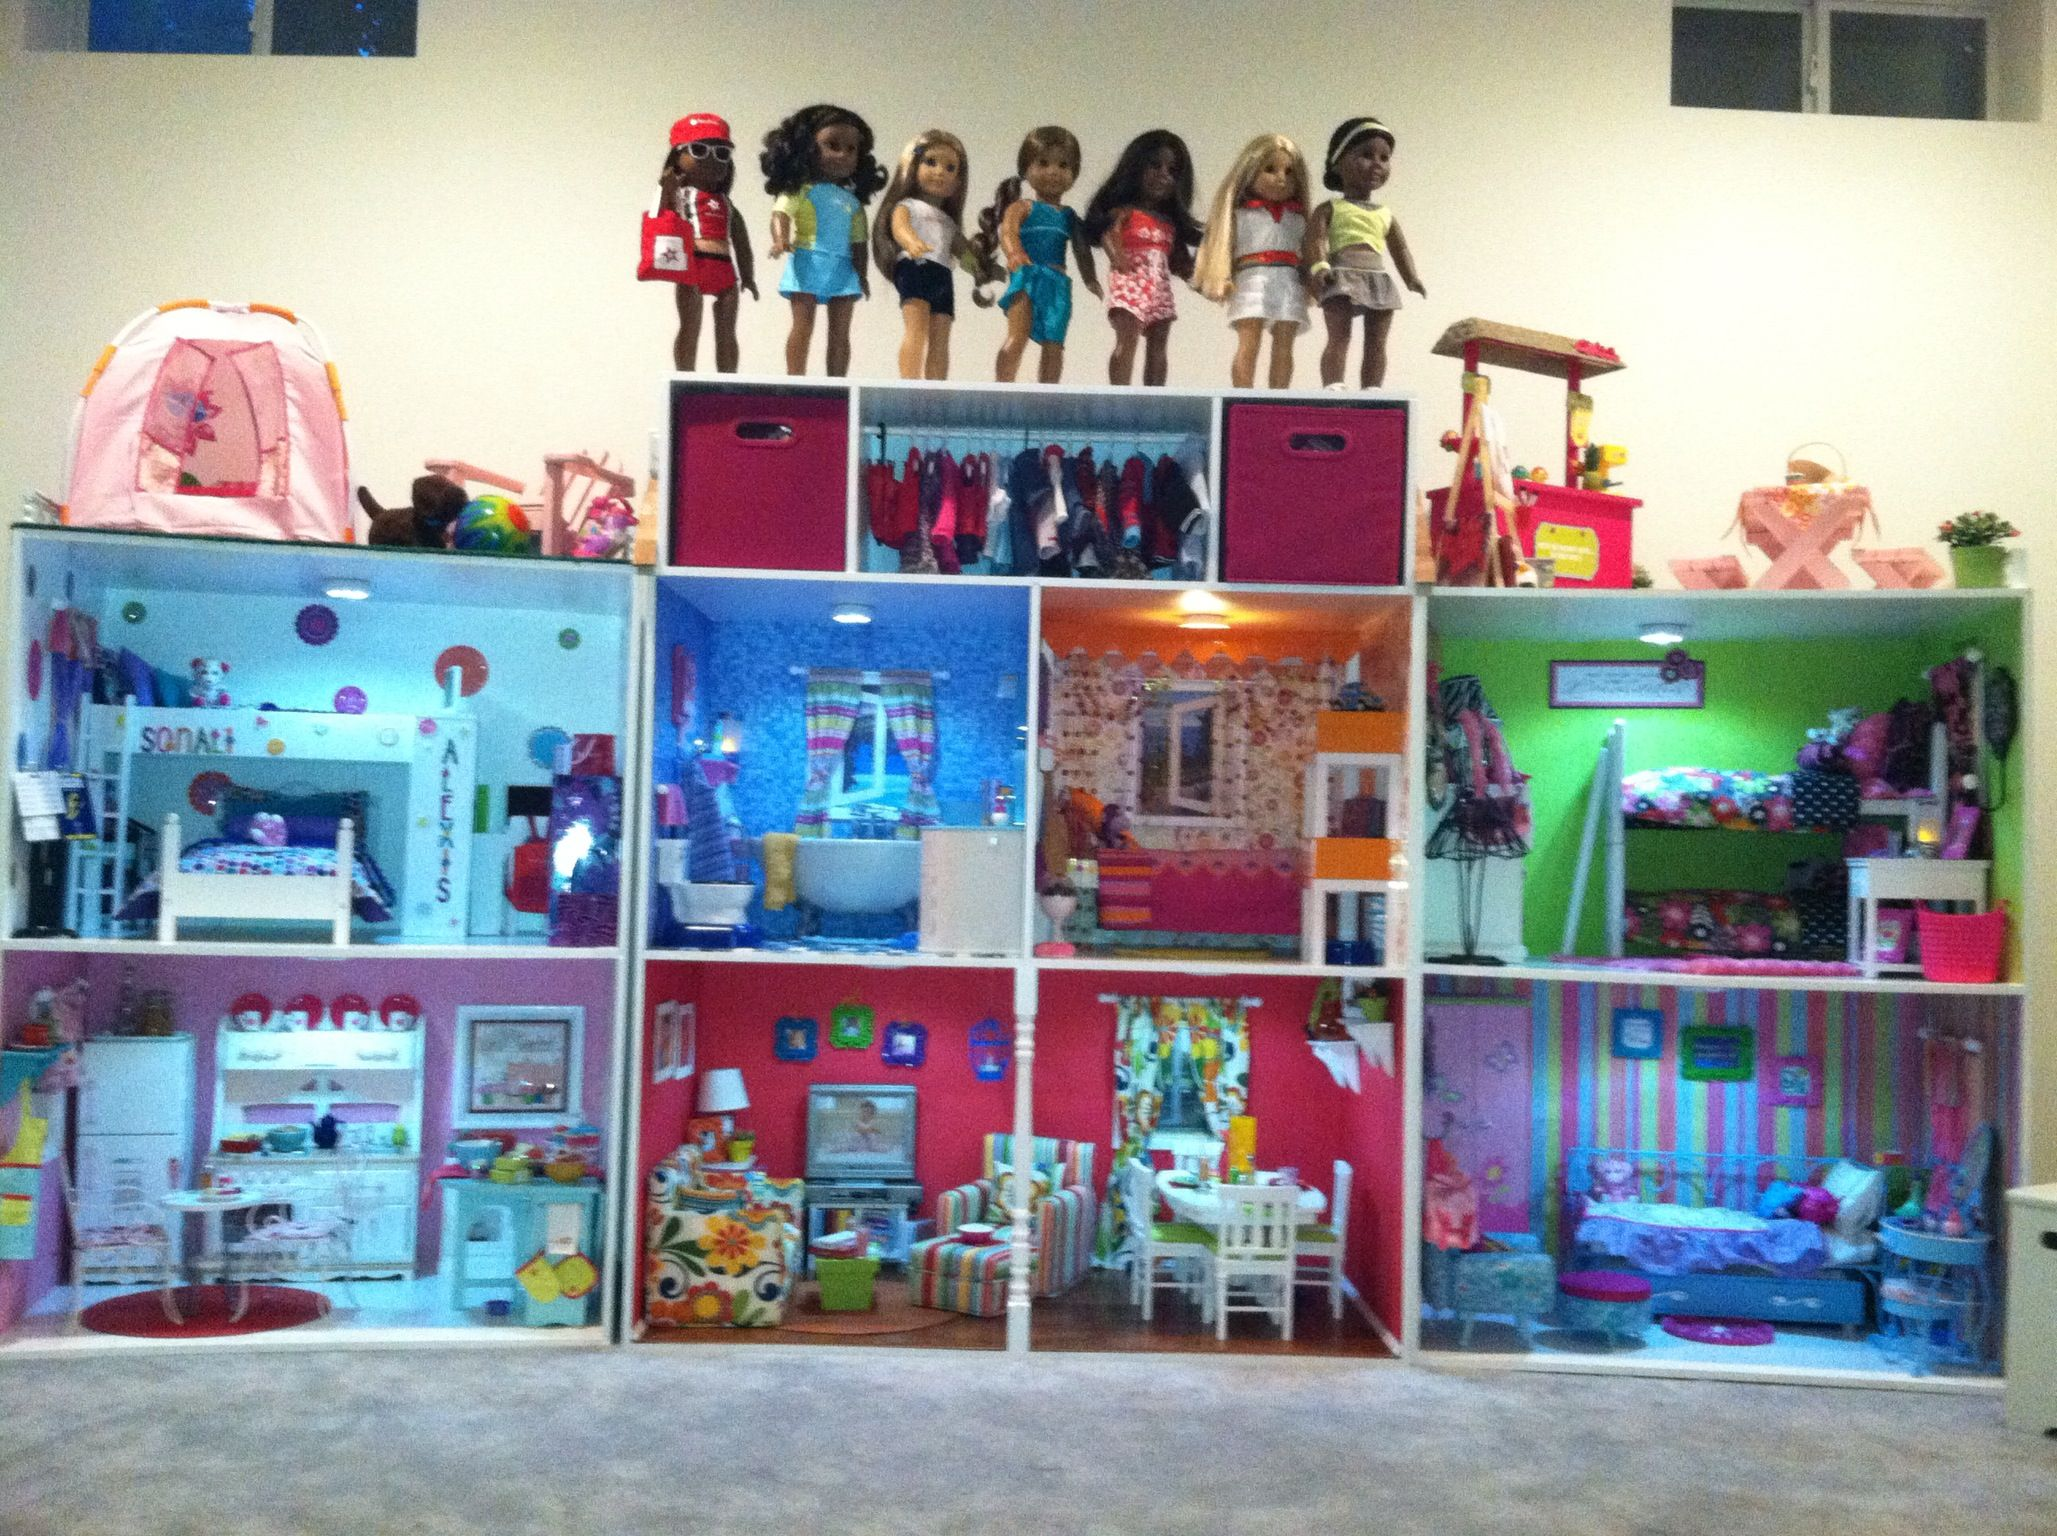 Farewell ideas for coworkers - American Girl Doll House Structure Built By Mom S Co Worker And Her Husband